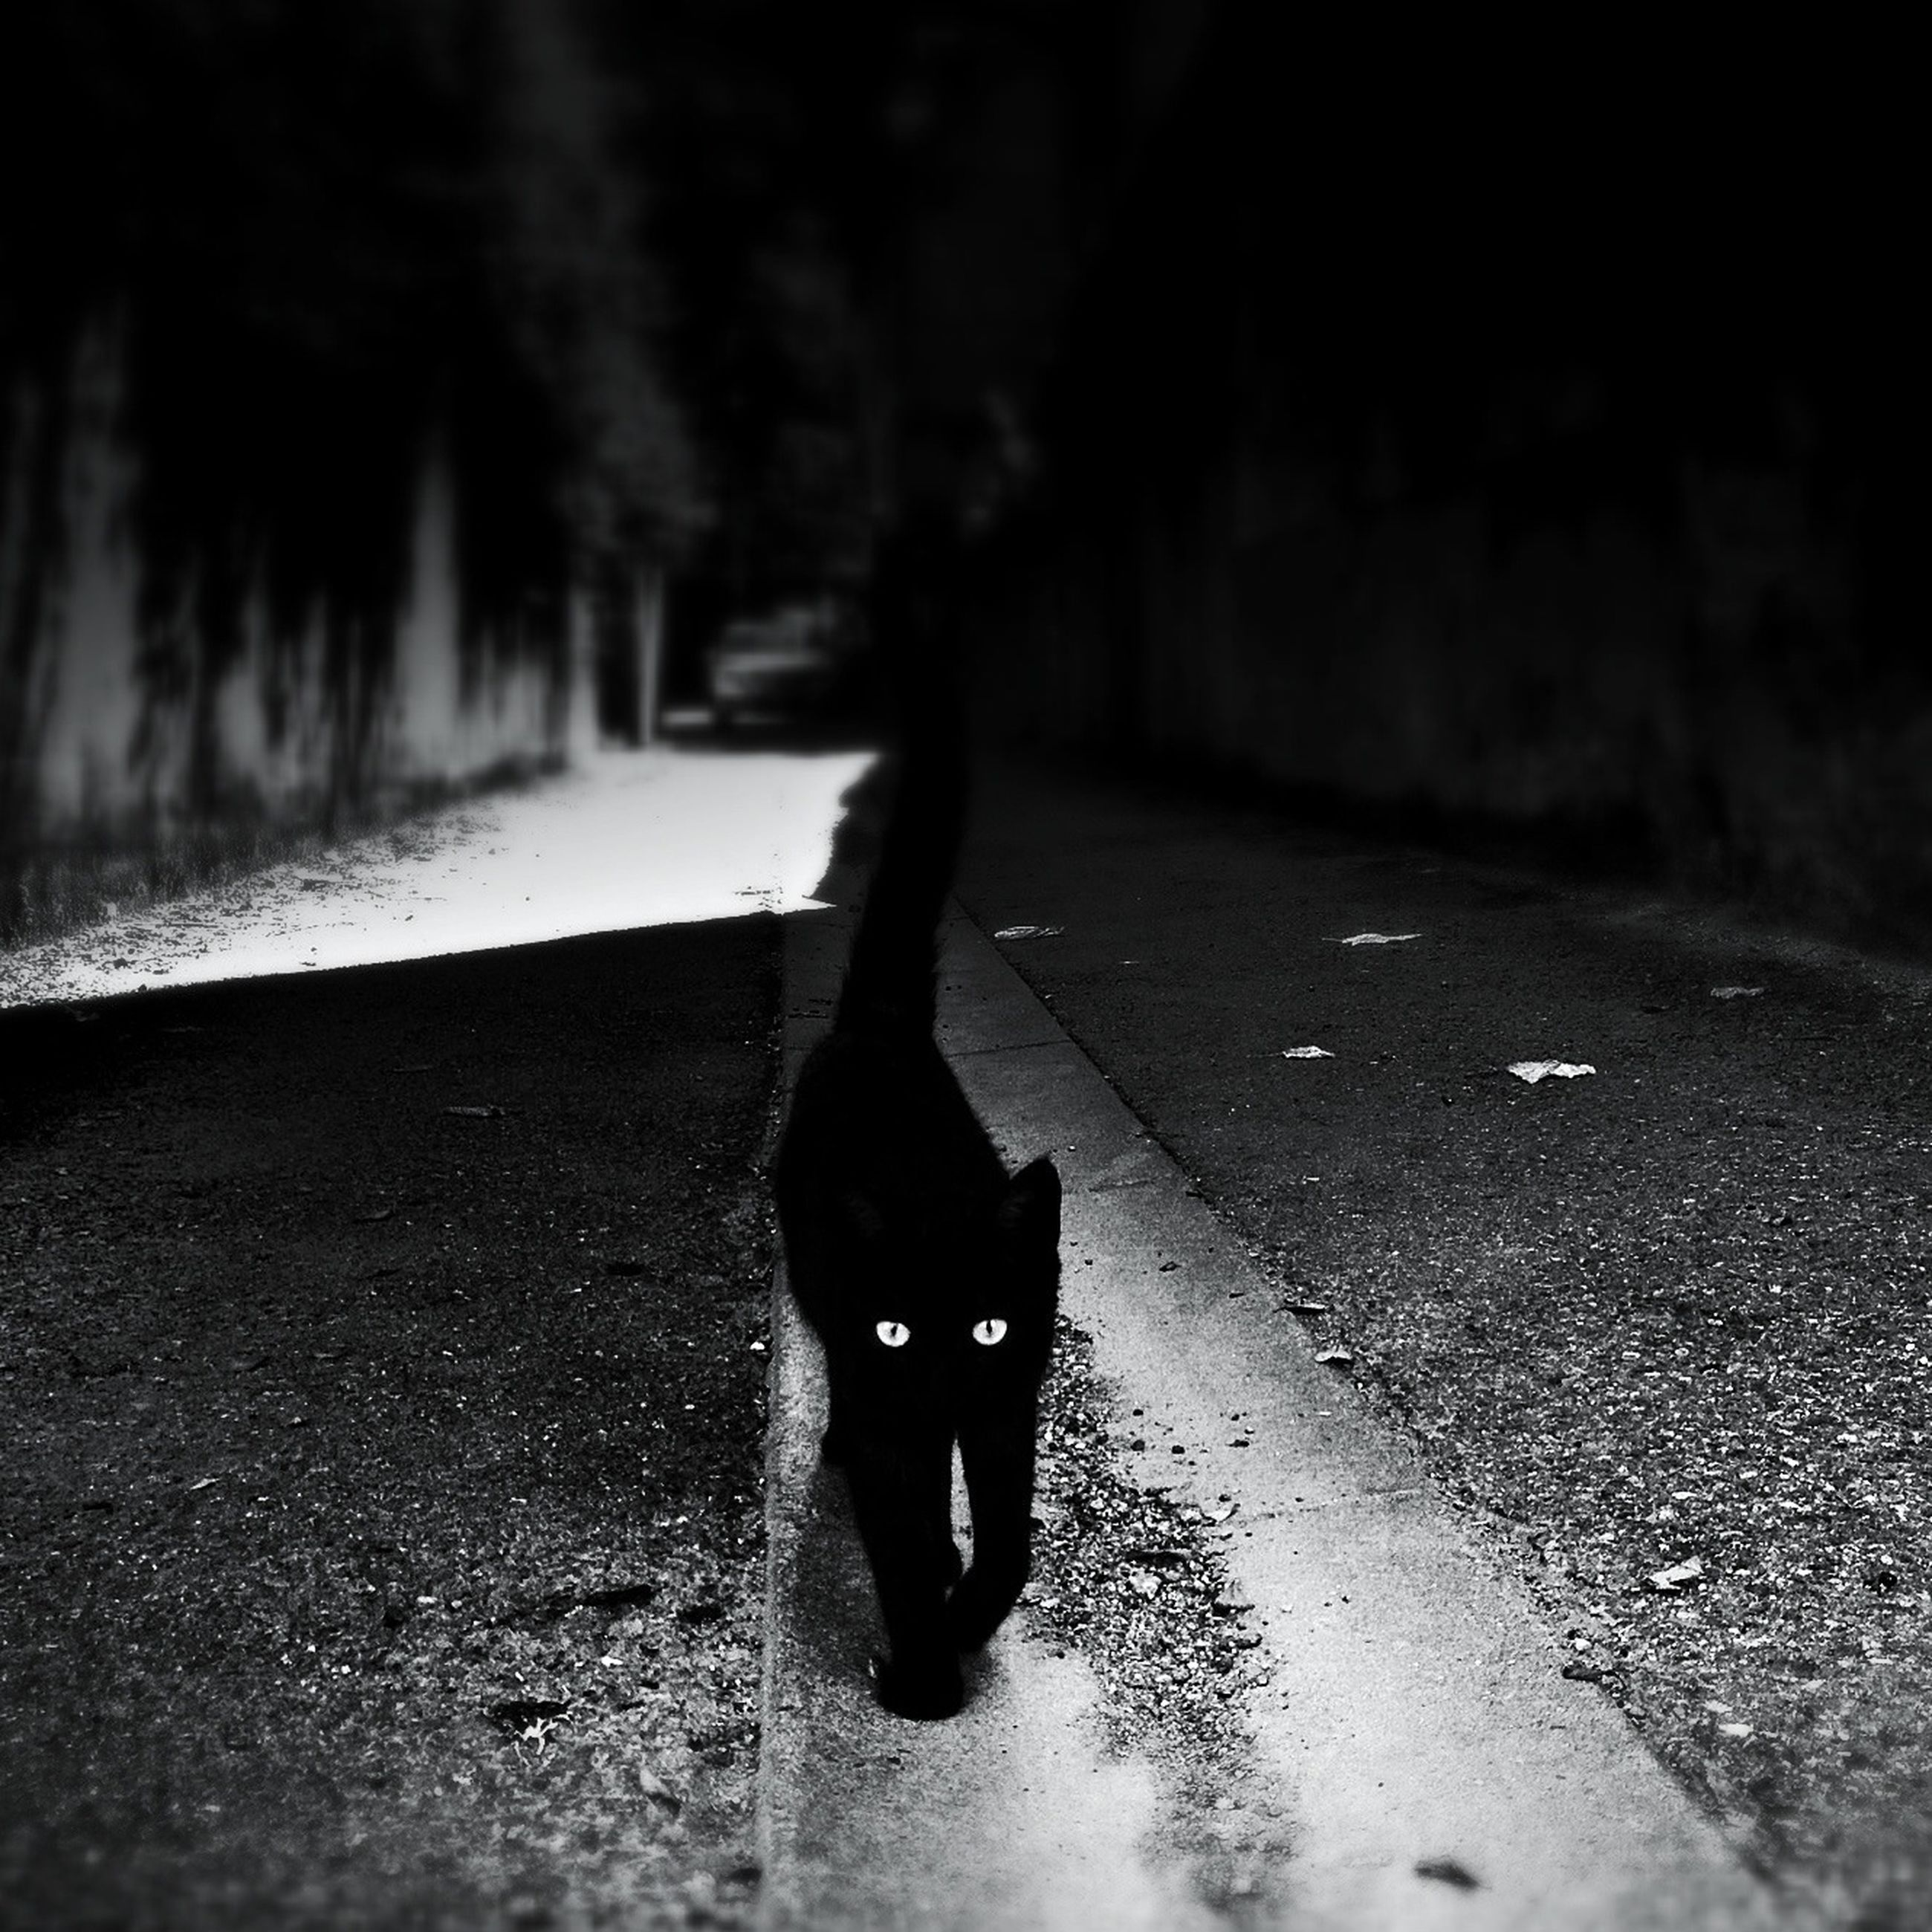 one animal, street, pets, black color, the way forward, road, asphalt, domestic animals, animal themes, dog, night, full length, walking, vanishing point, outdoors, high angle view, selective focus, transportation, footpath, no people